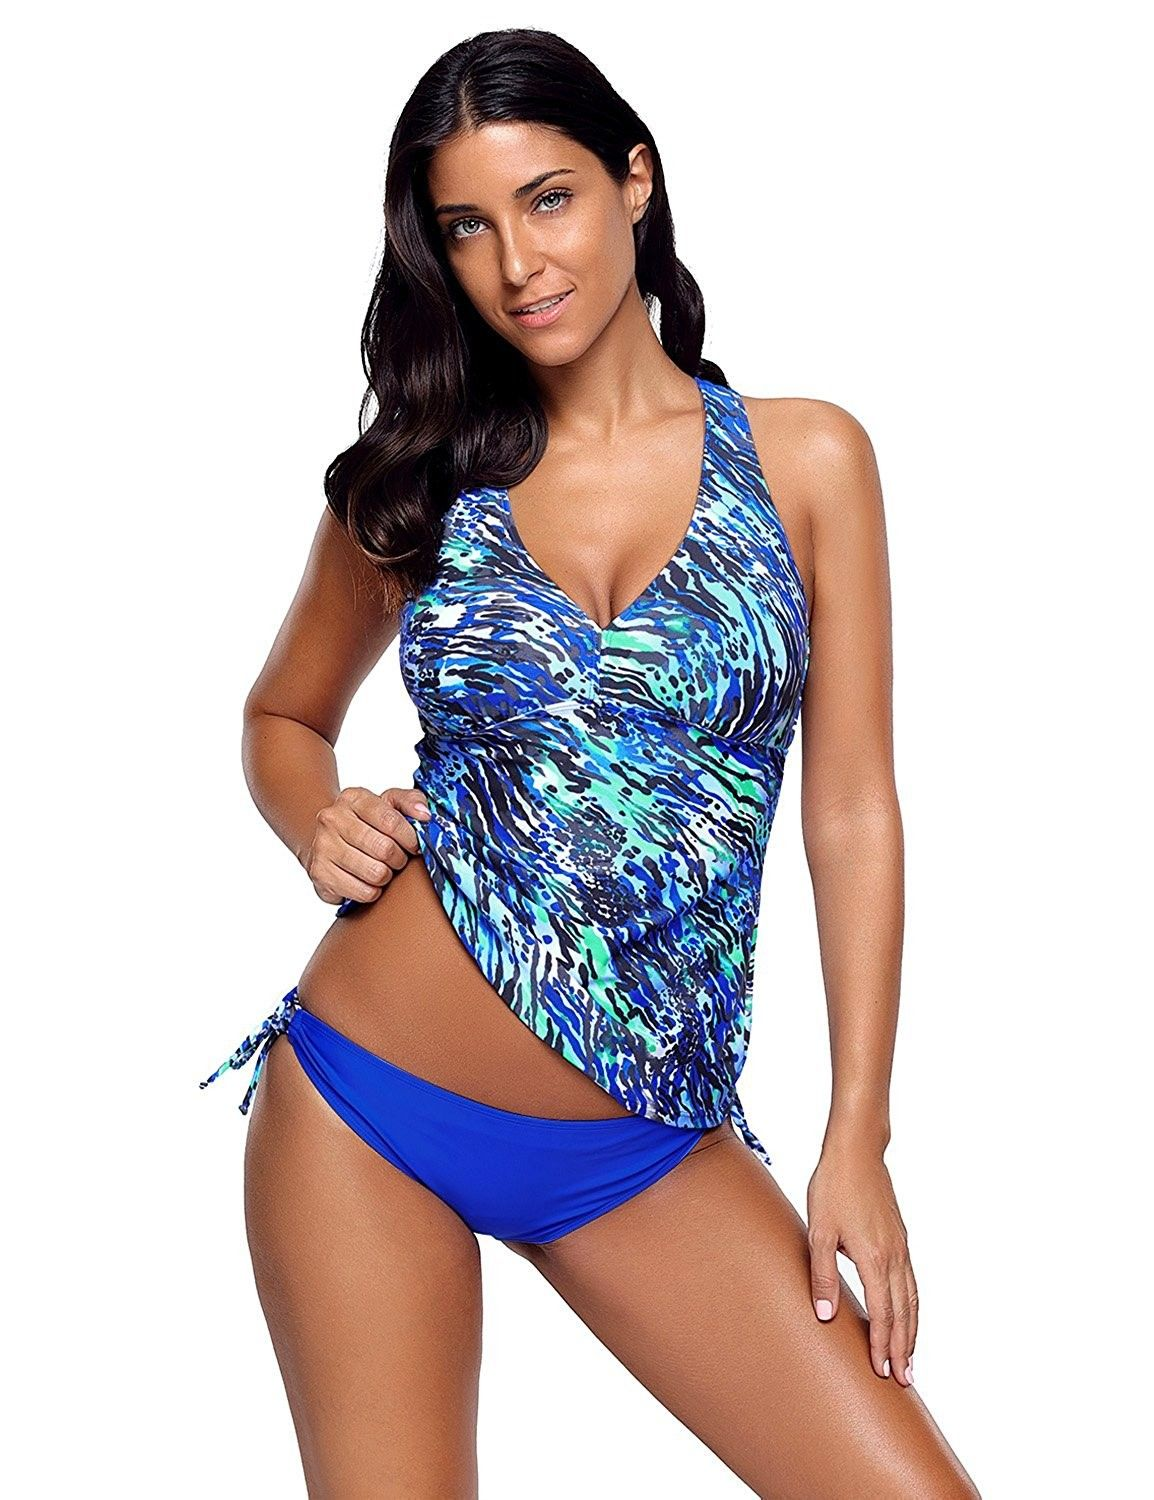 897040dd3f1f8 Women's Clothing, Swimsuits & Cover Ups, Tankinis, Women's Two Piece  colorful Print Tankini Set Crisscross Back Swimsuit - Multicoloured 1 -  C5188KSA4T2 ...